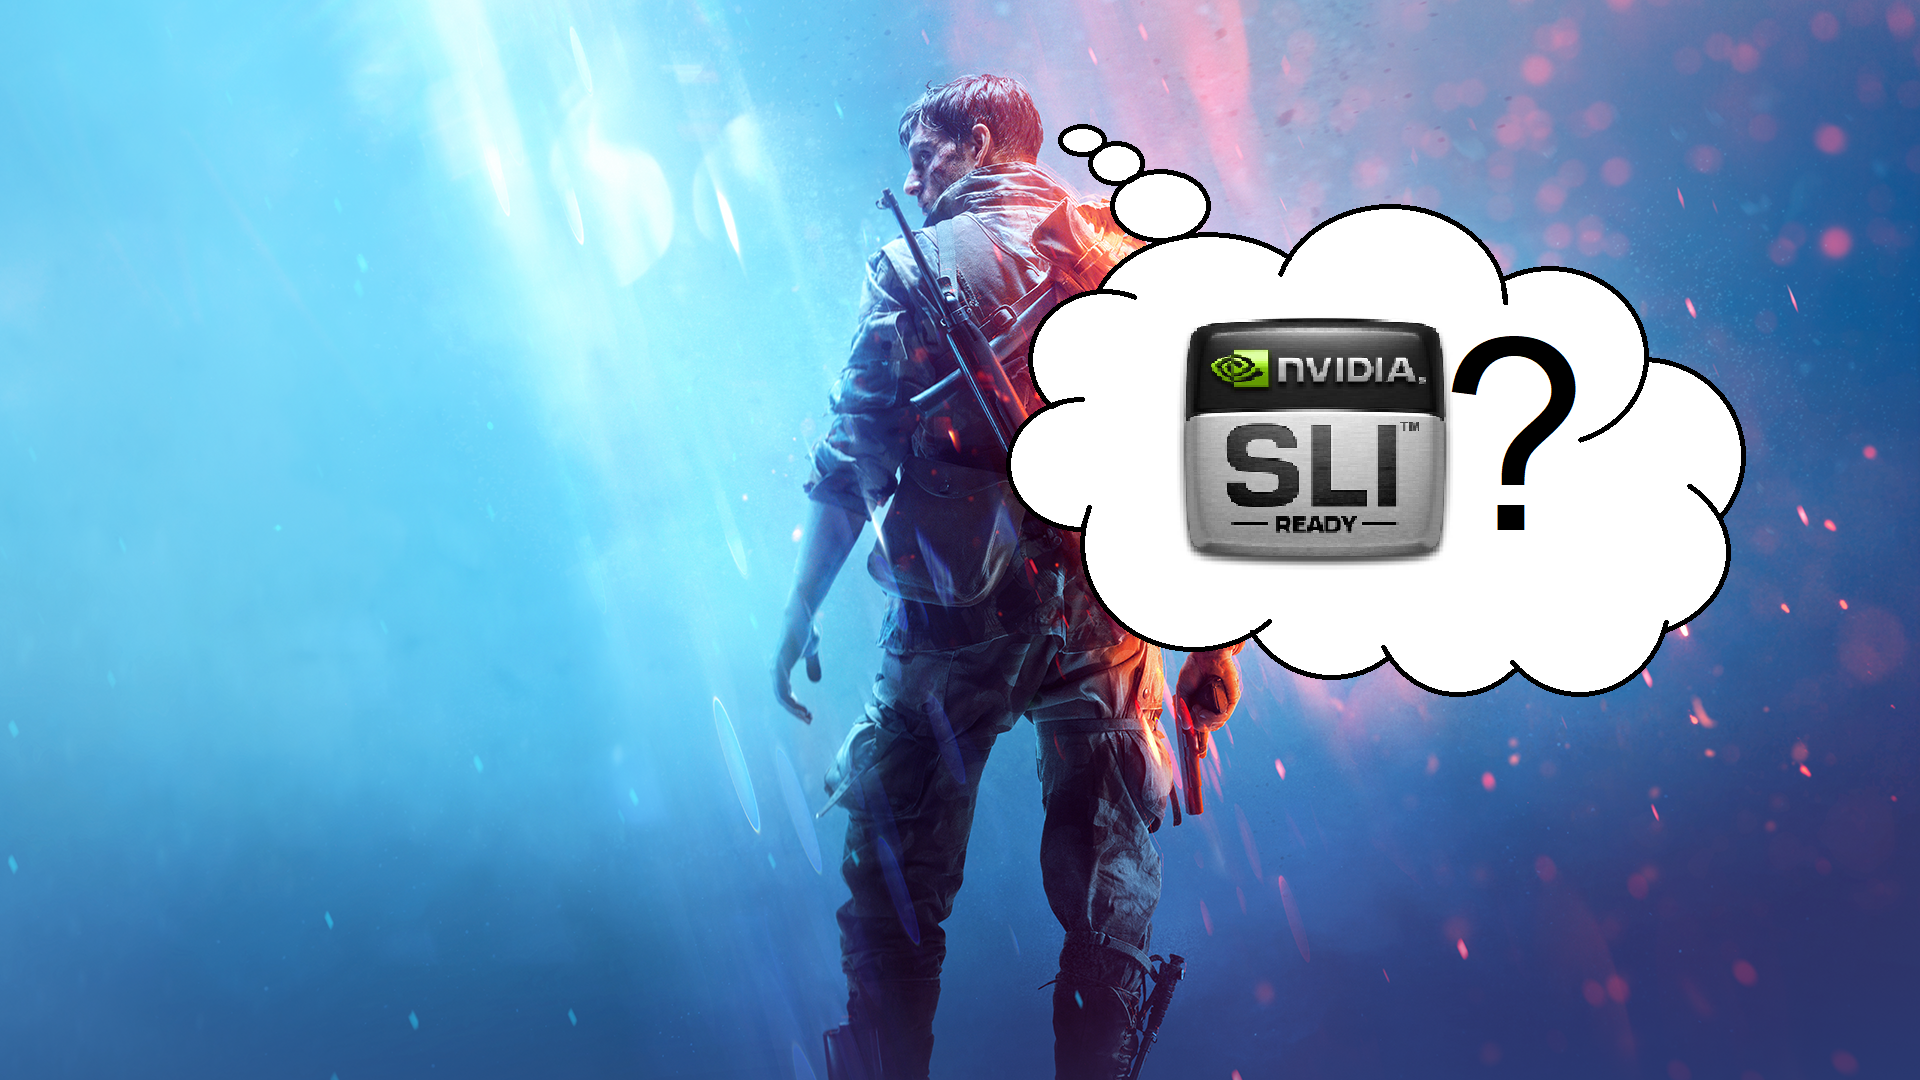 Battlefield V and NVidia SLI: Making It Work – JasonVanPatten com